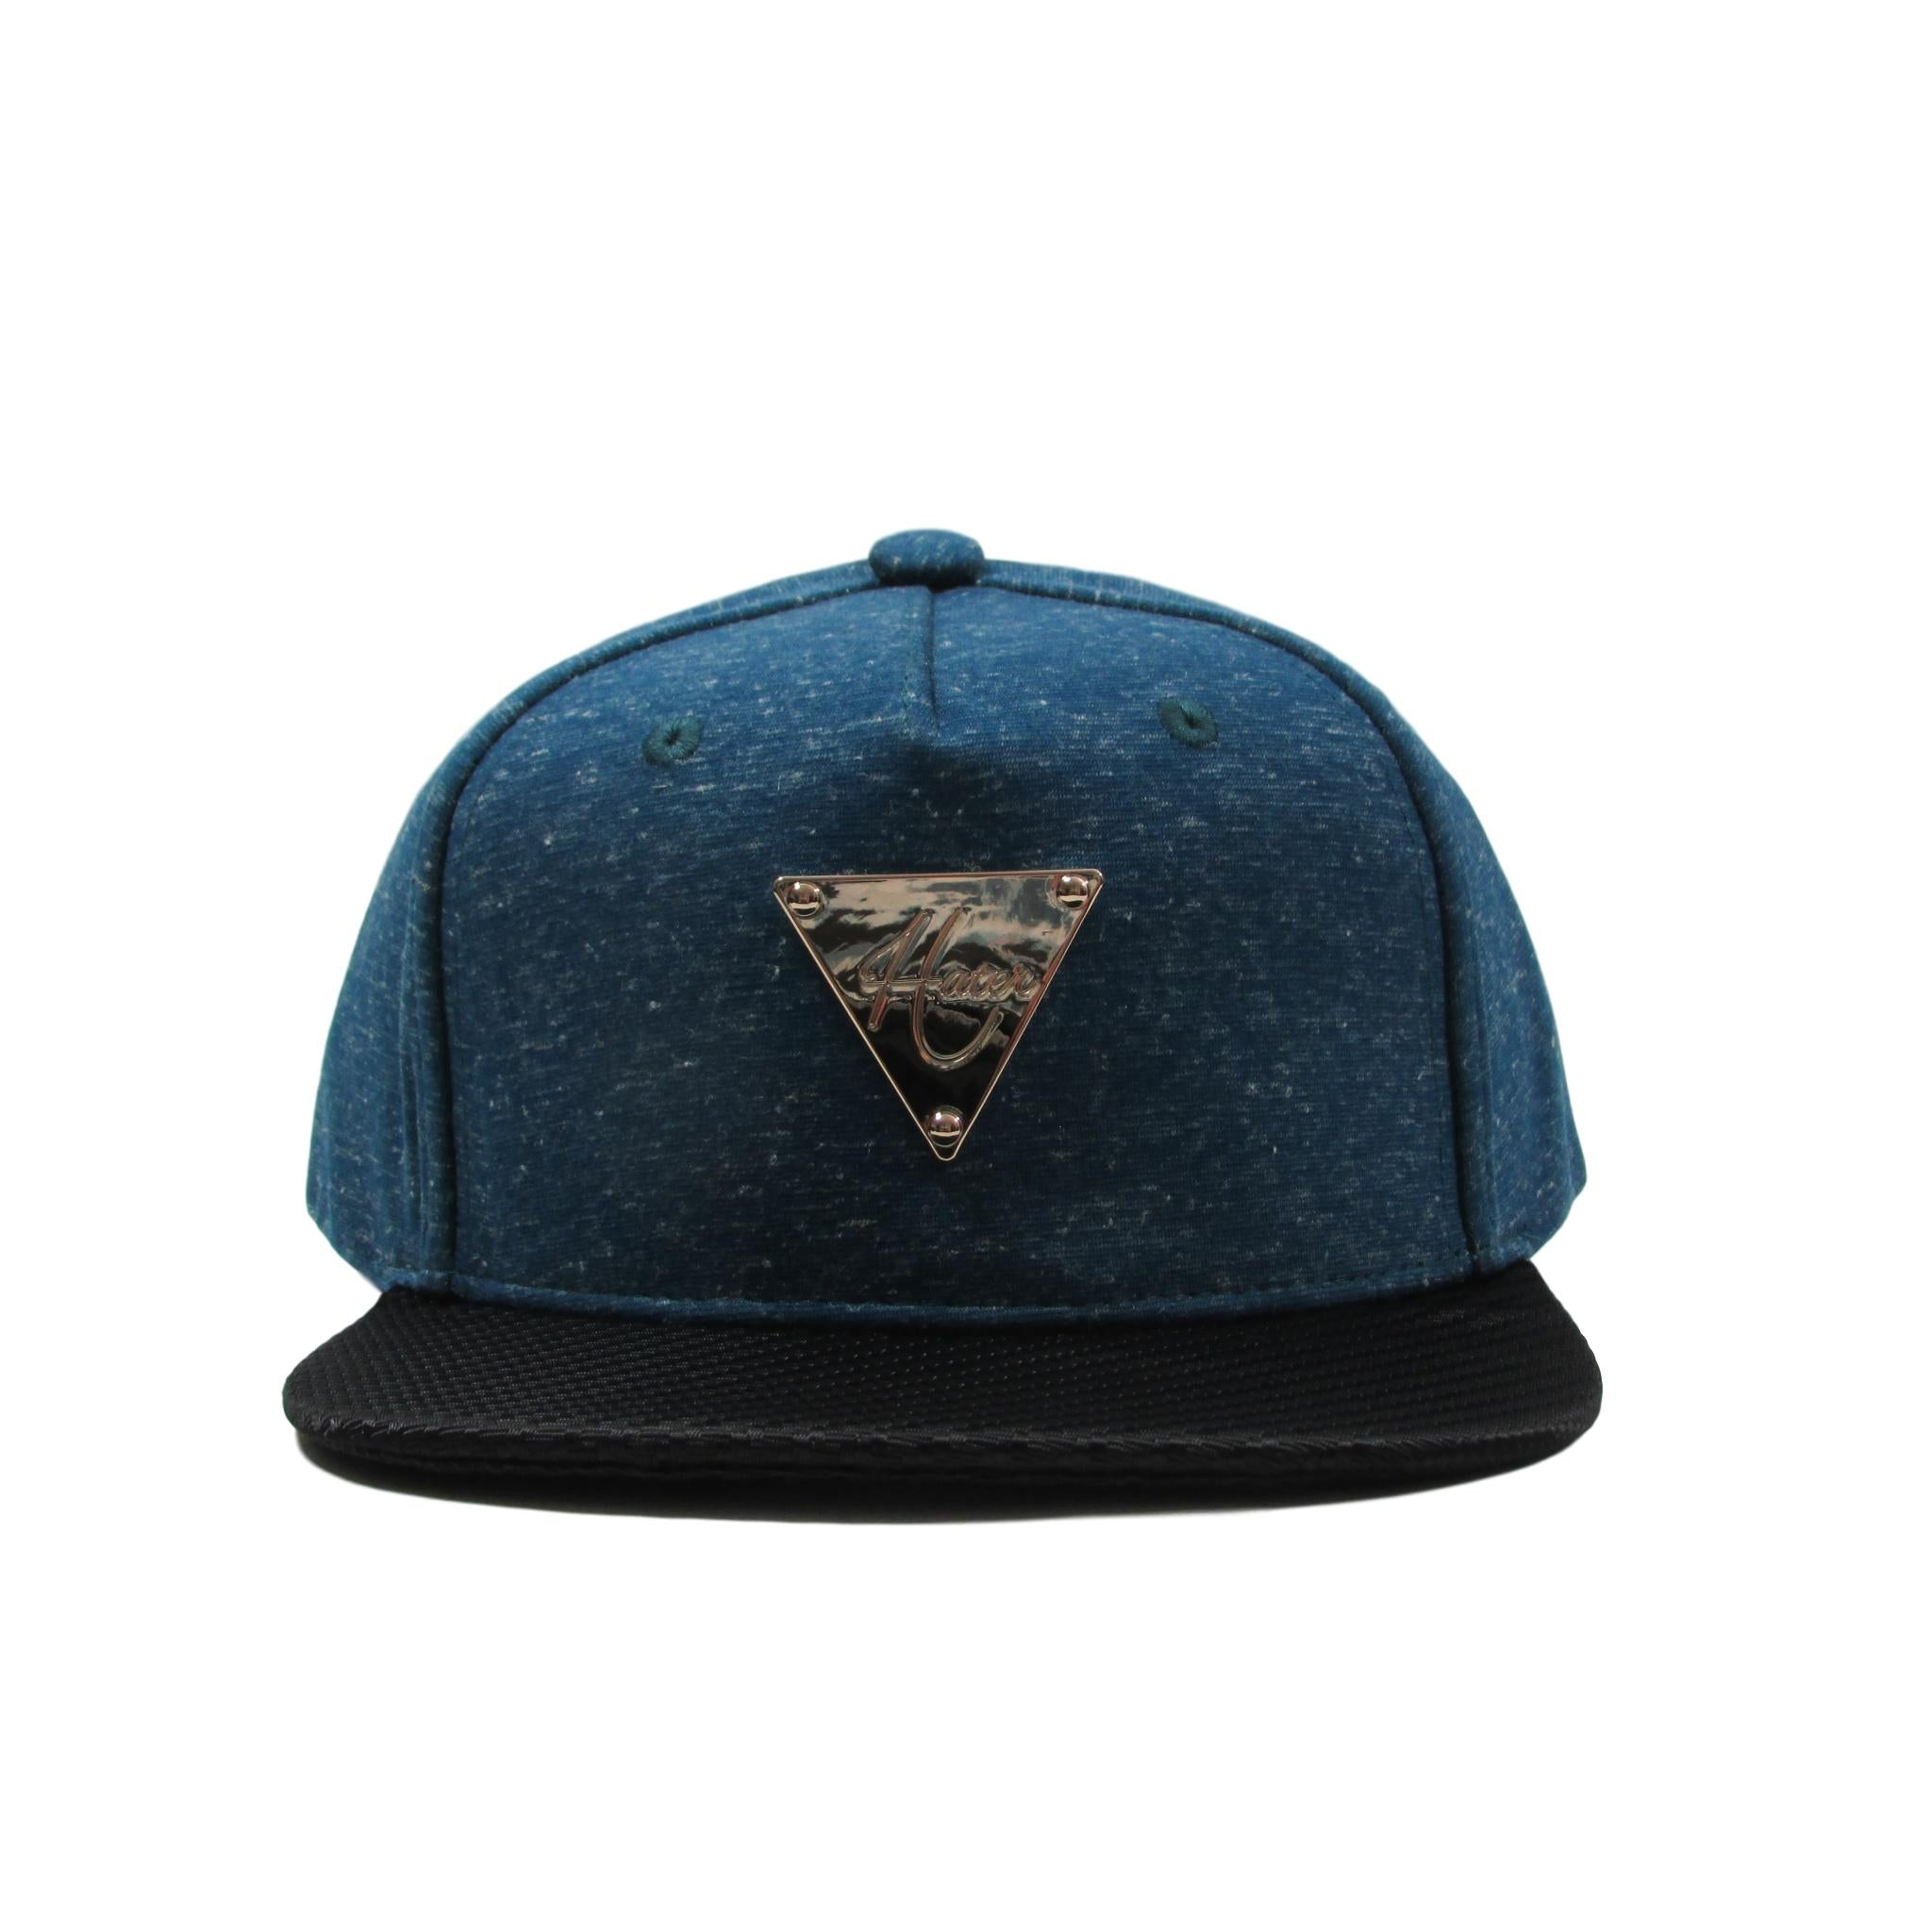 HATer Cloud Dust Snapback Hat w/ Grain Pattern Brim